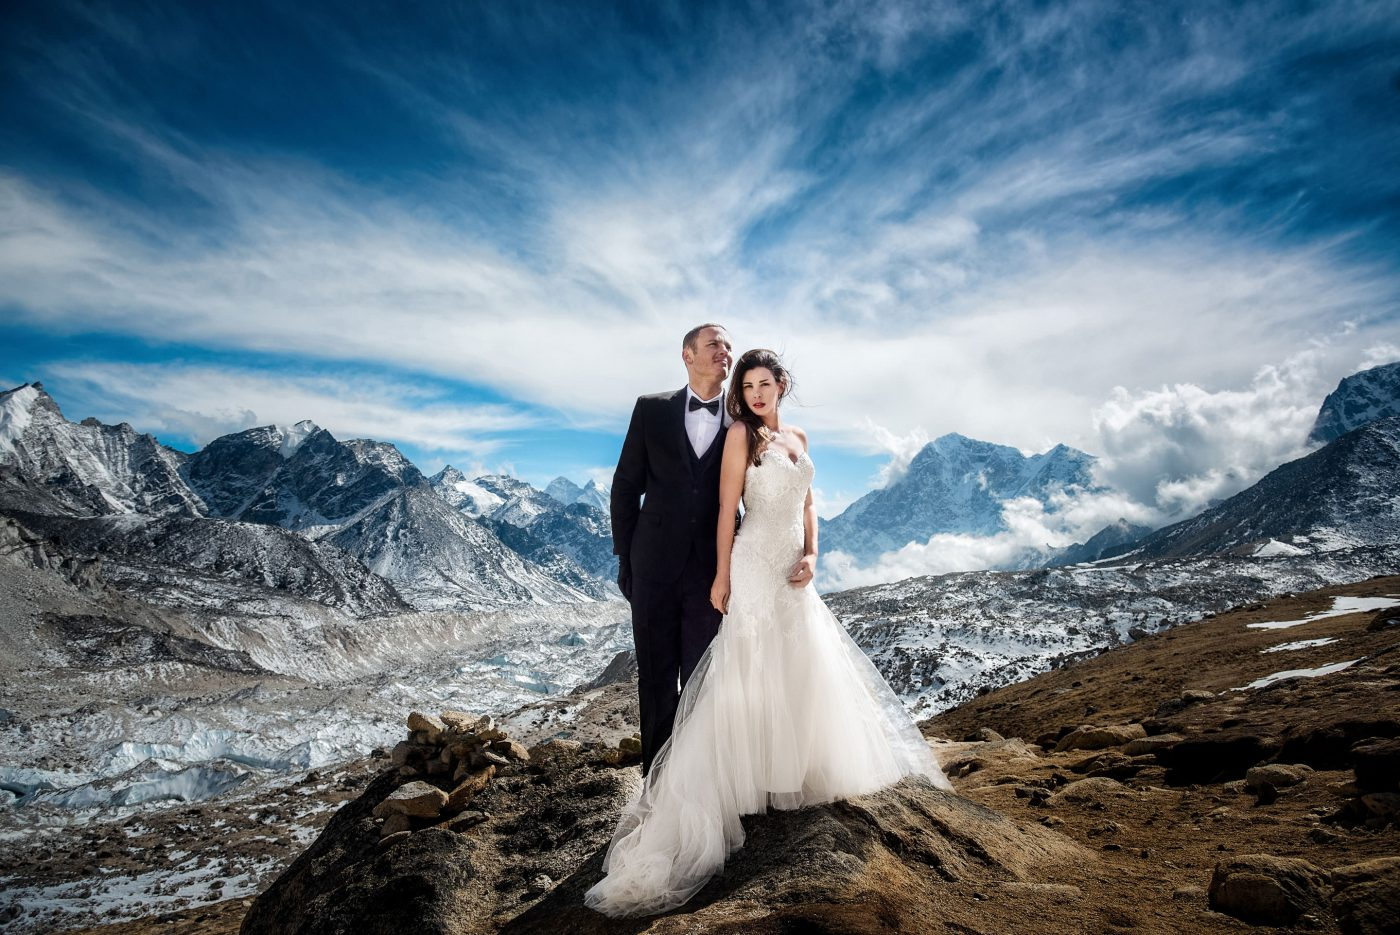 mount everest adventure wedding ashley and james on mountain hiking to summit for epic photos in the himalayas